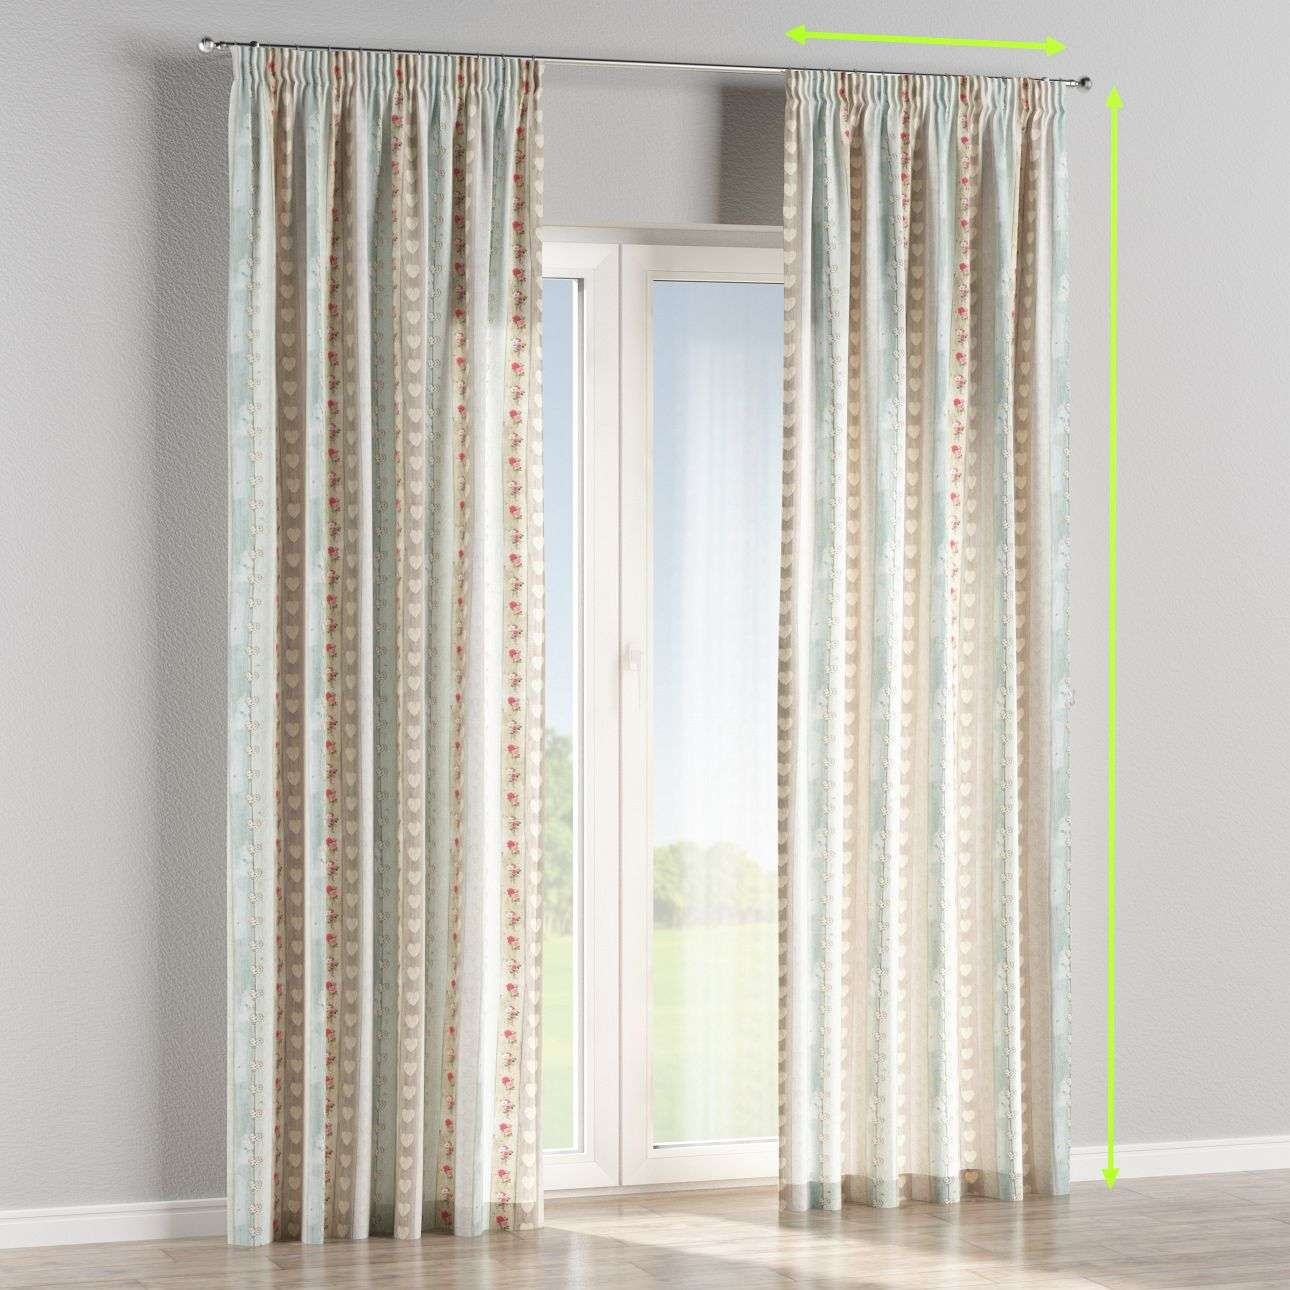 Pencil pleat curtains in collection Ashley, fabric: 140-20